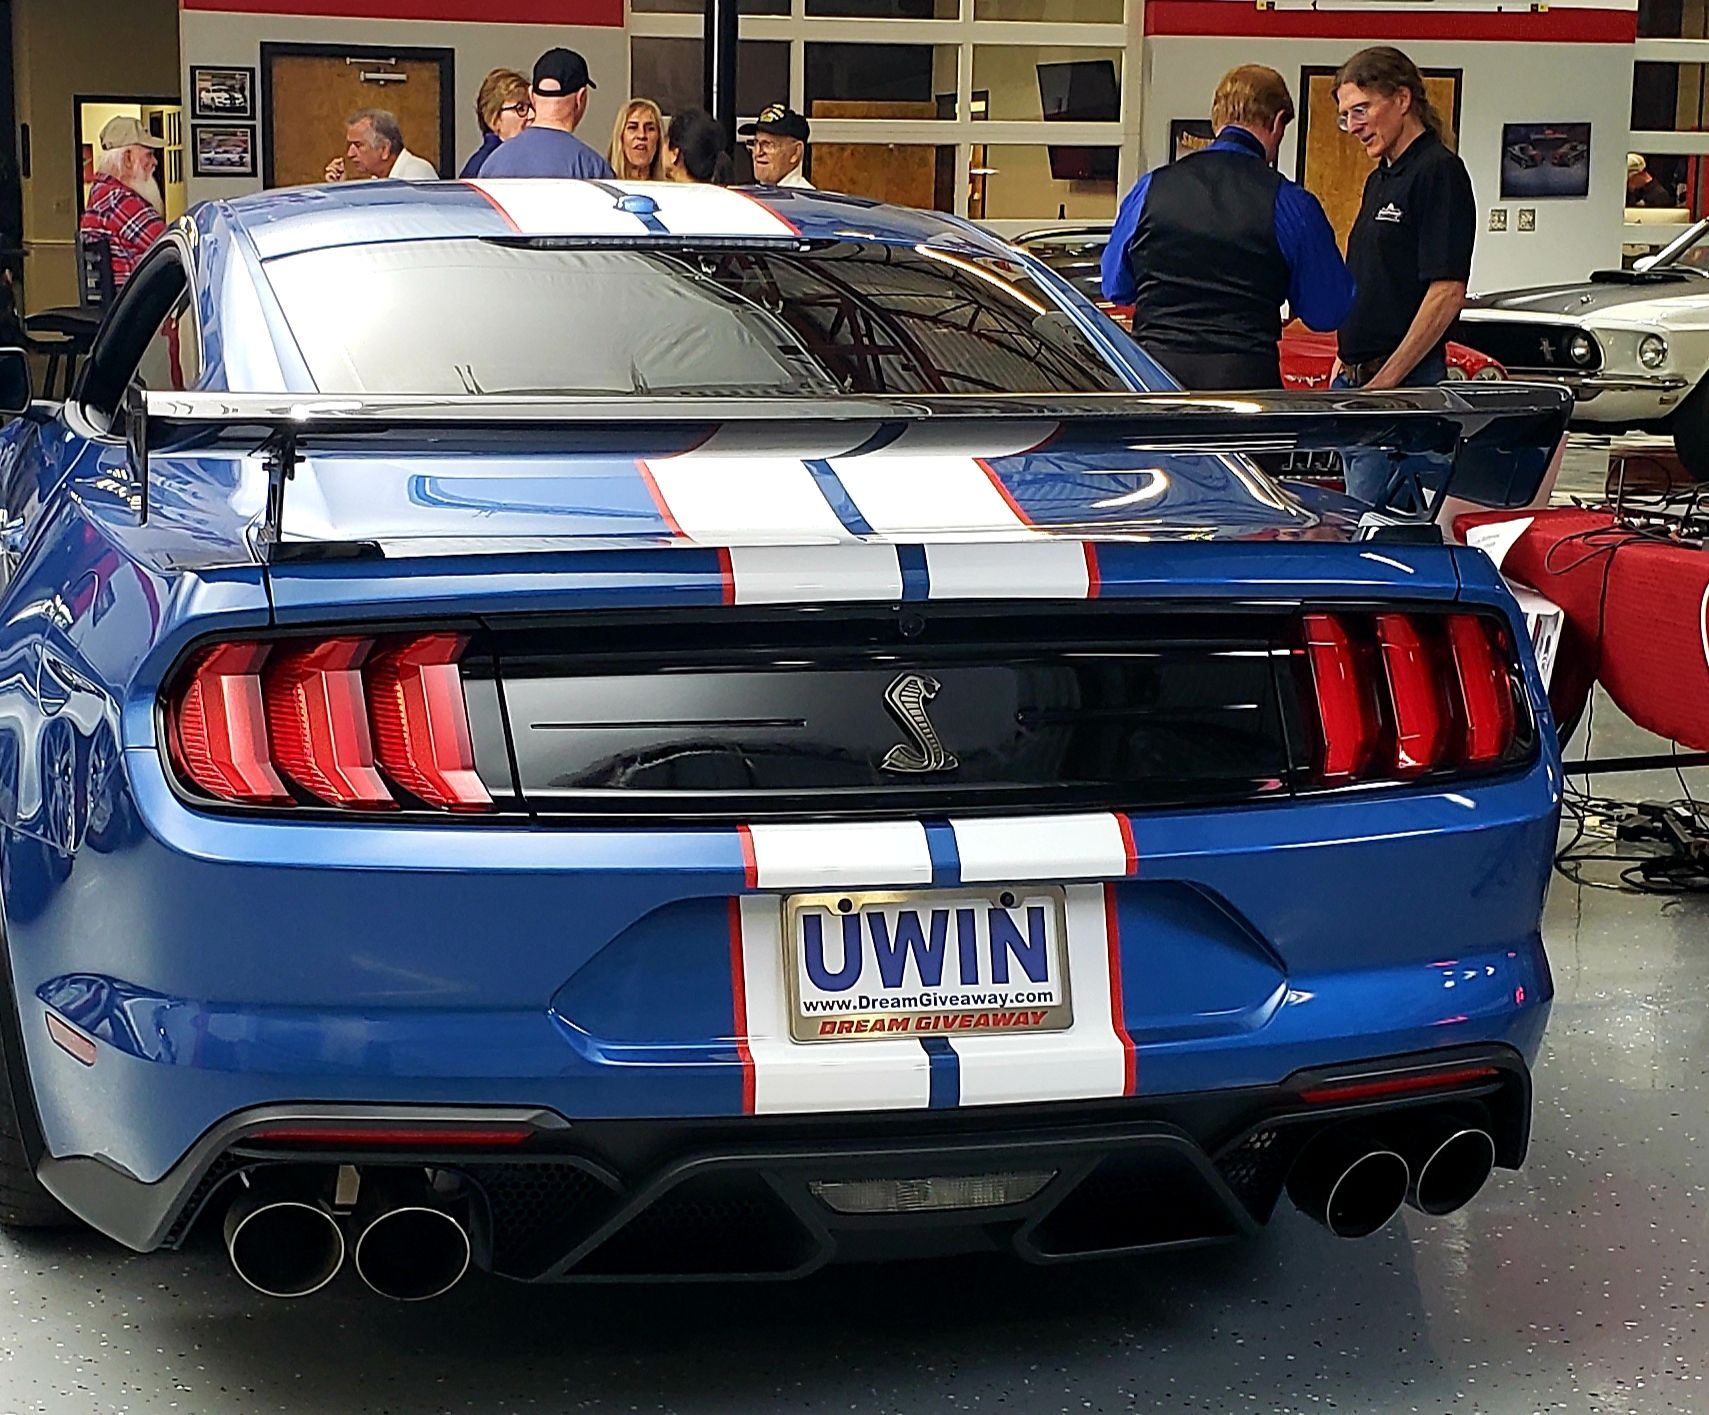 2020 Shelby Gt500 Blue In 2020 Shelby Gt500 Shelby Dream Giveaway